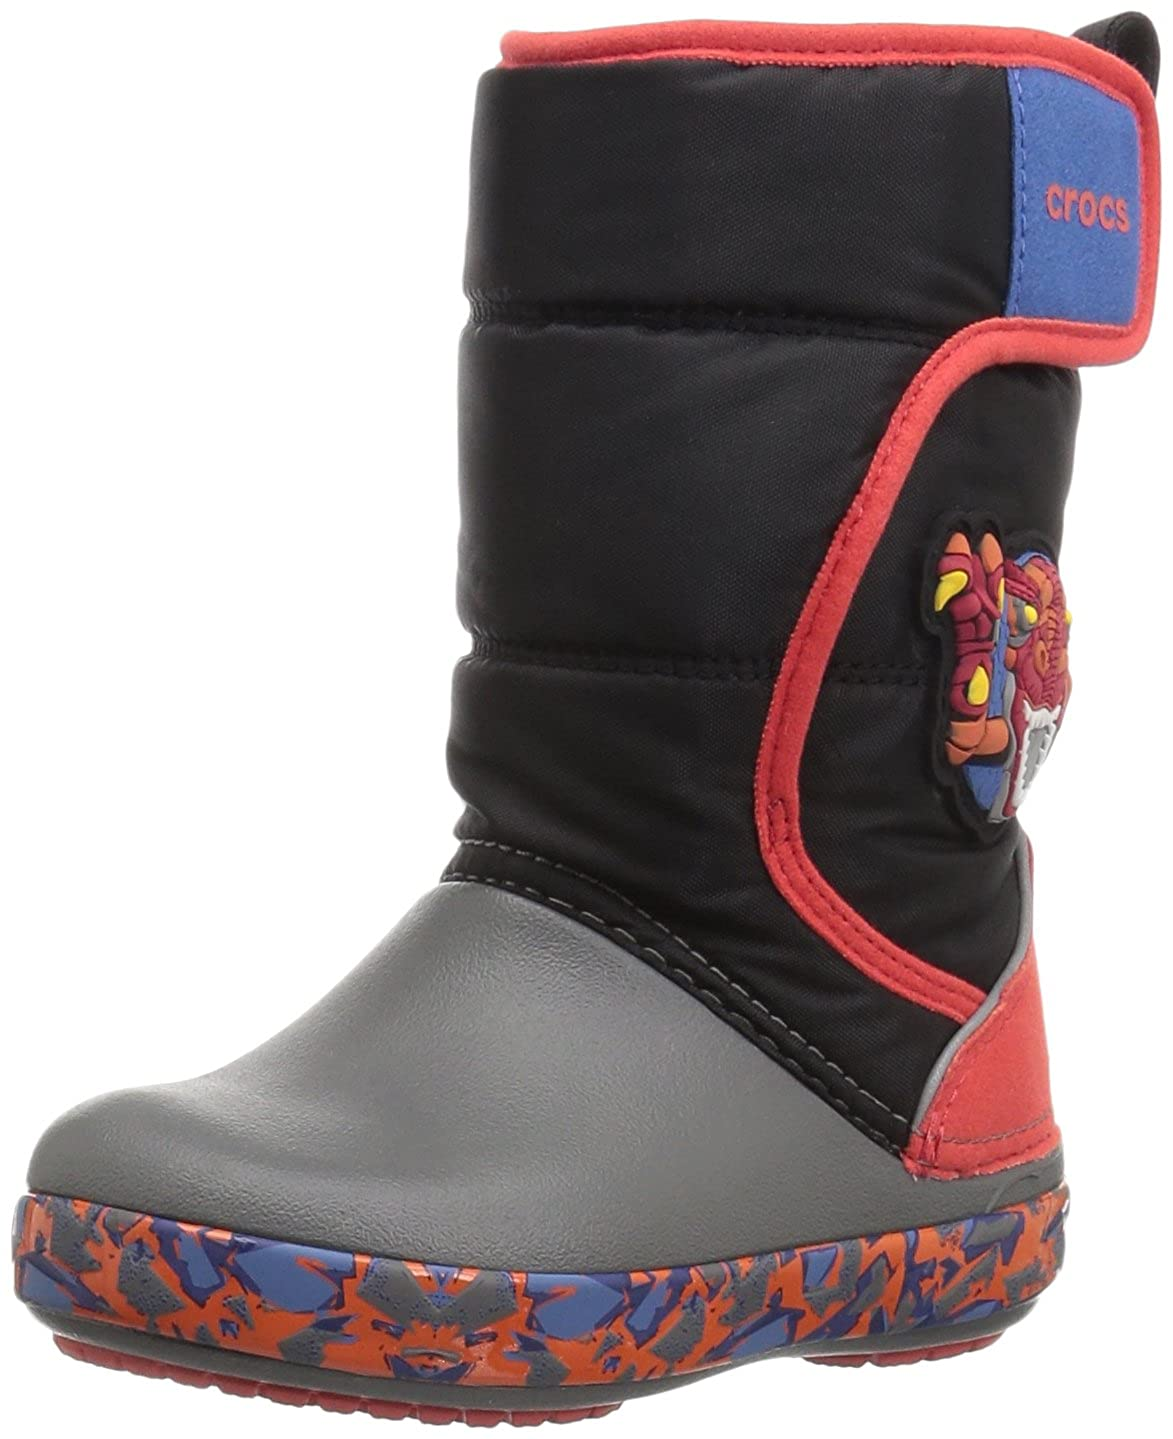 Crocs Kids' Lodgepoint Lights Roborex Snow Boot